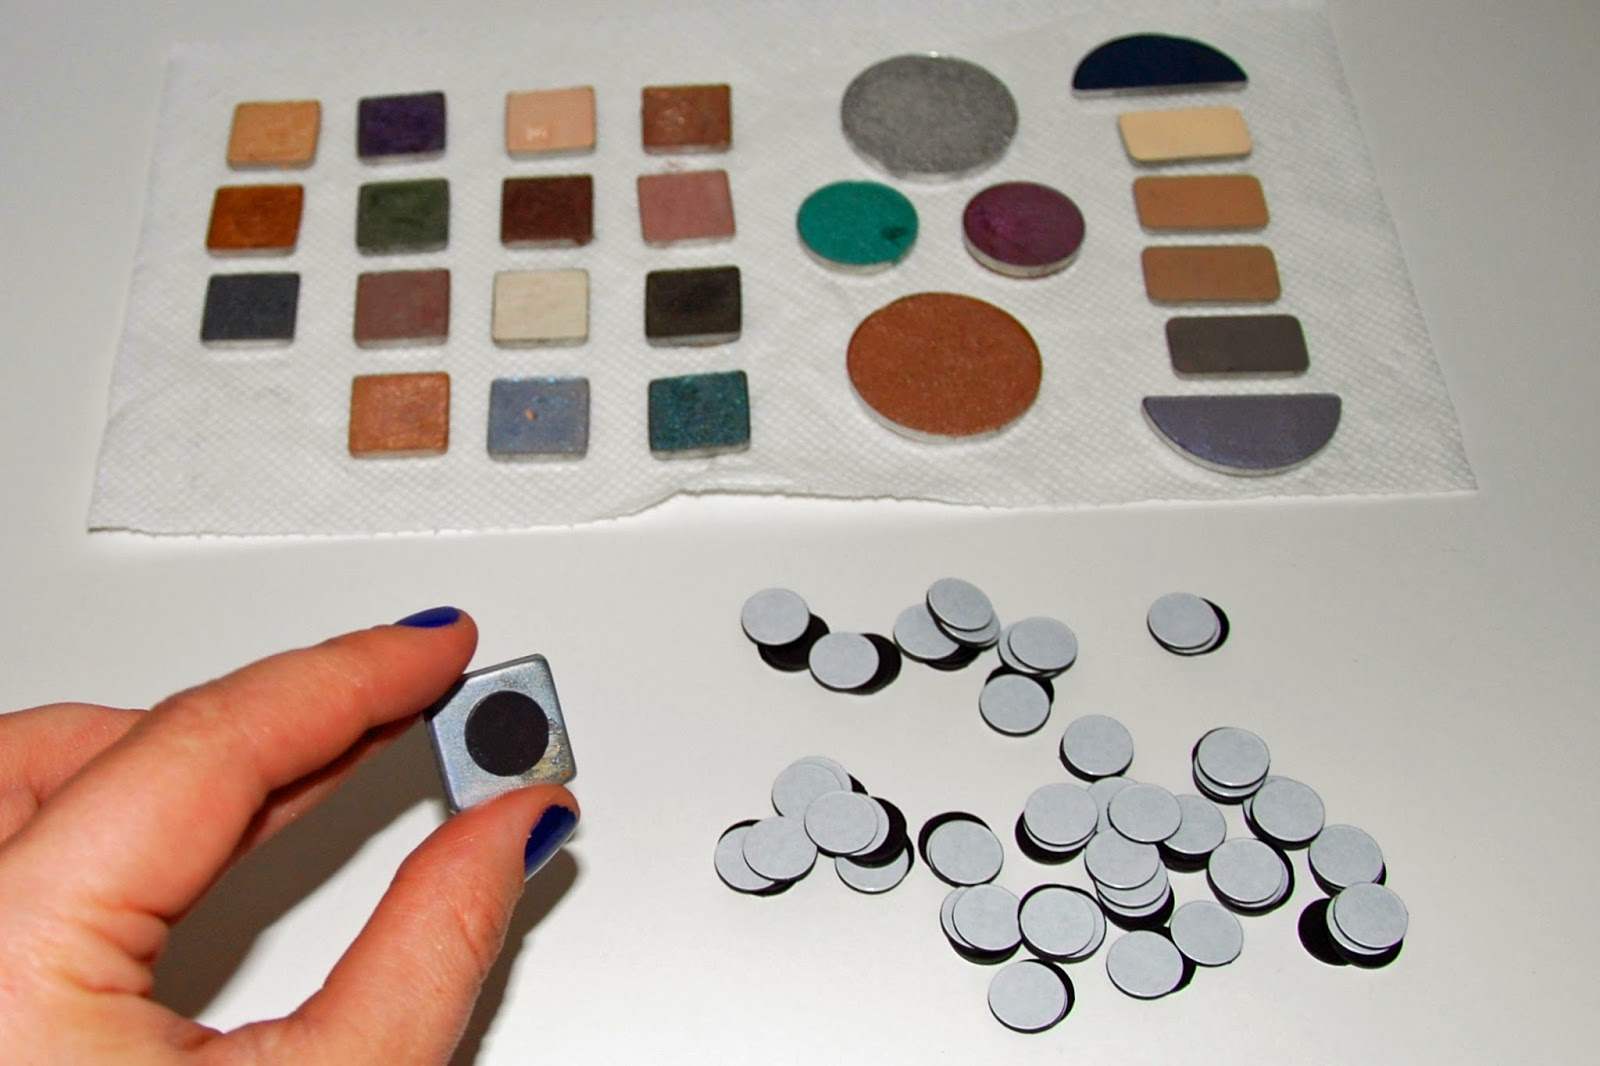 DIY Eyeshadow Palette - Magnets on Back of Pans